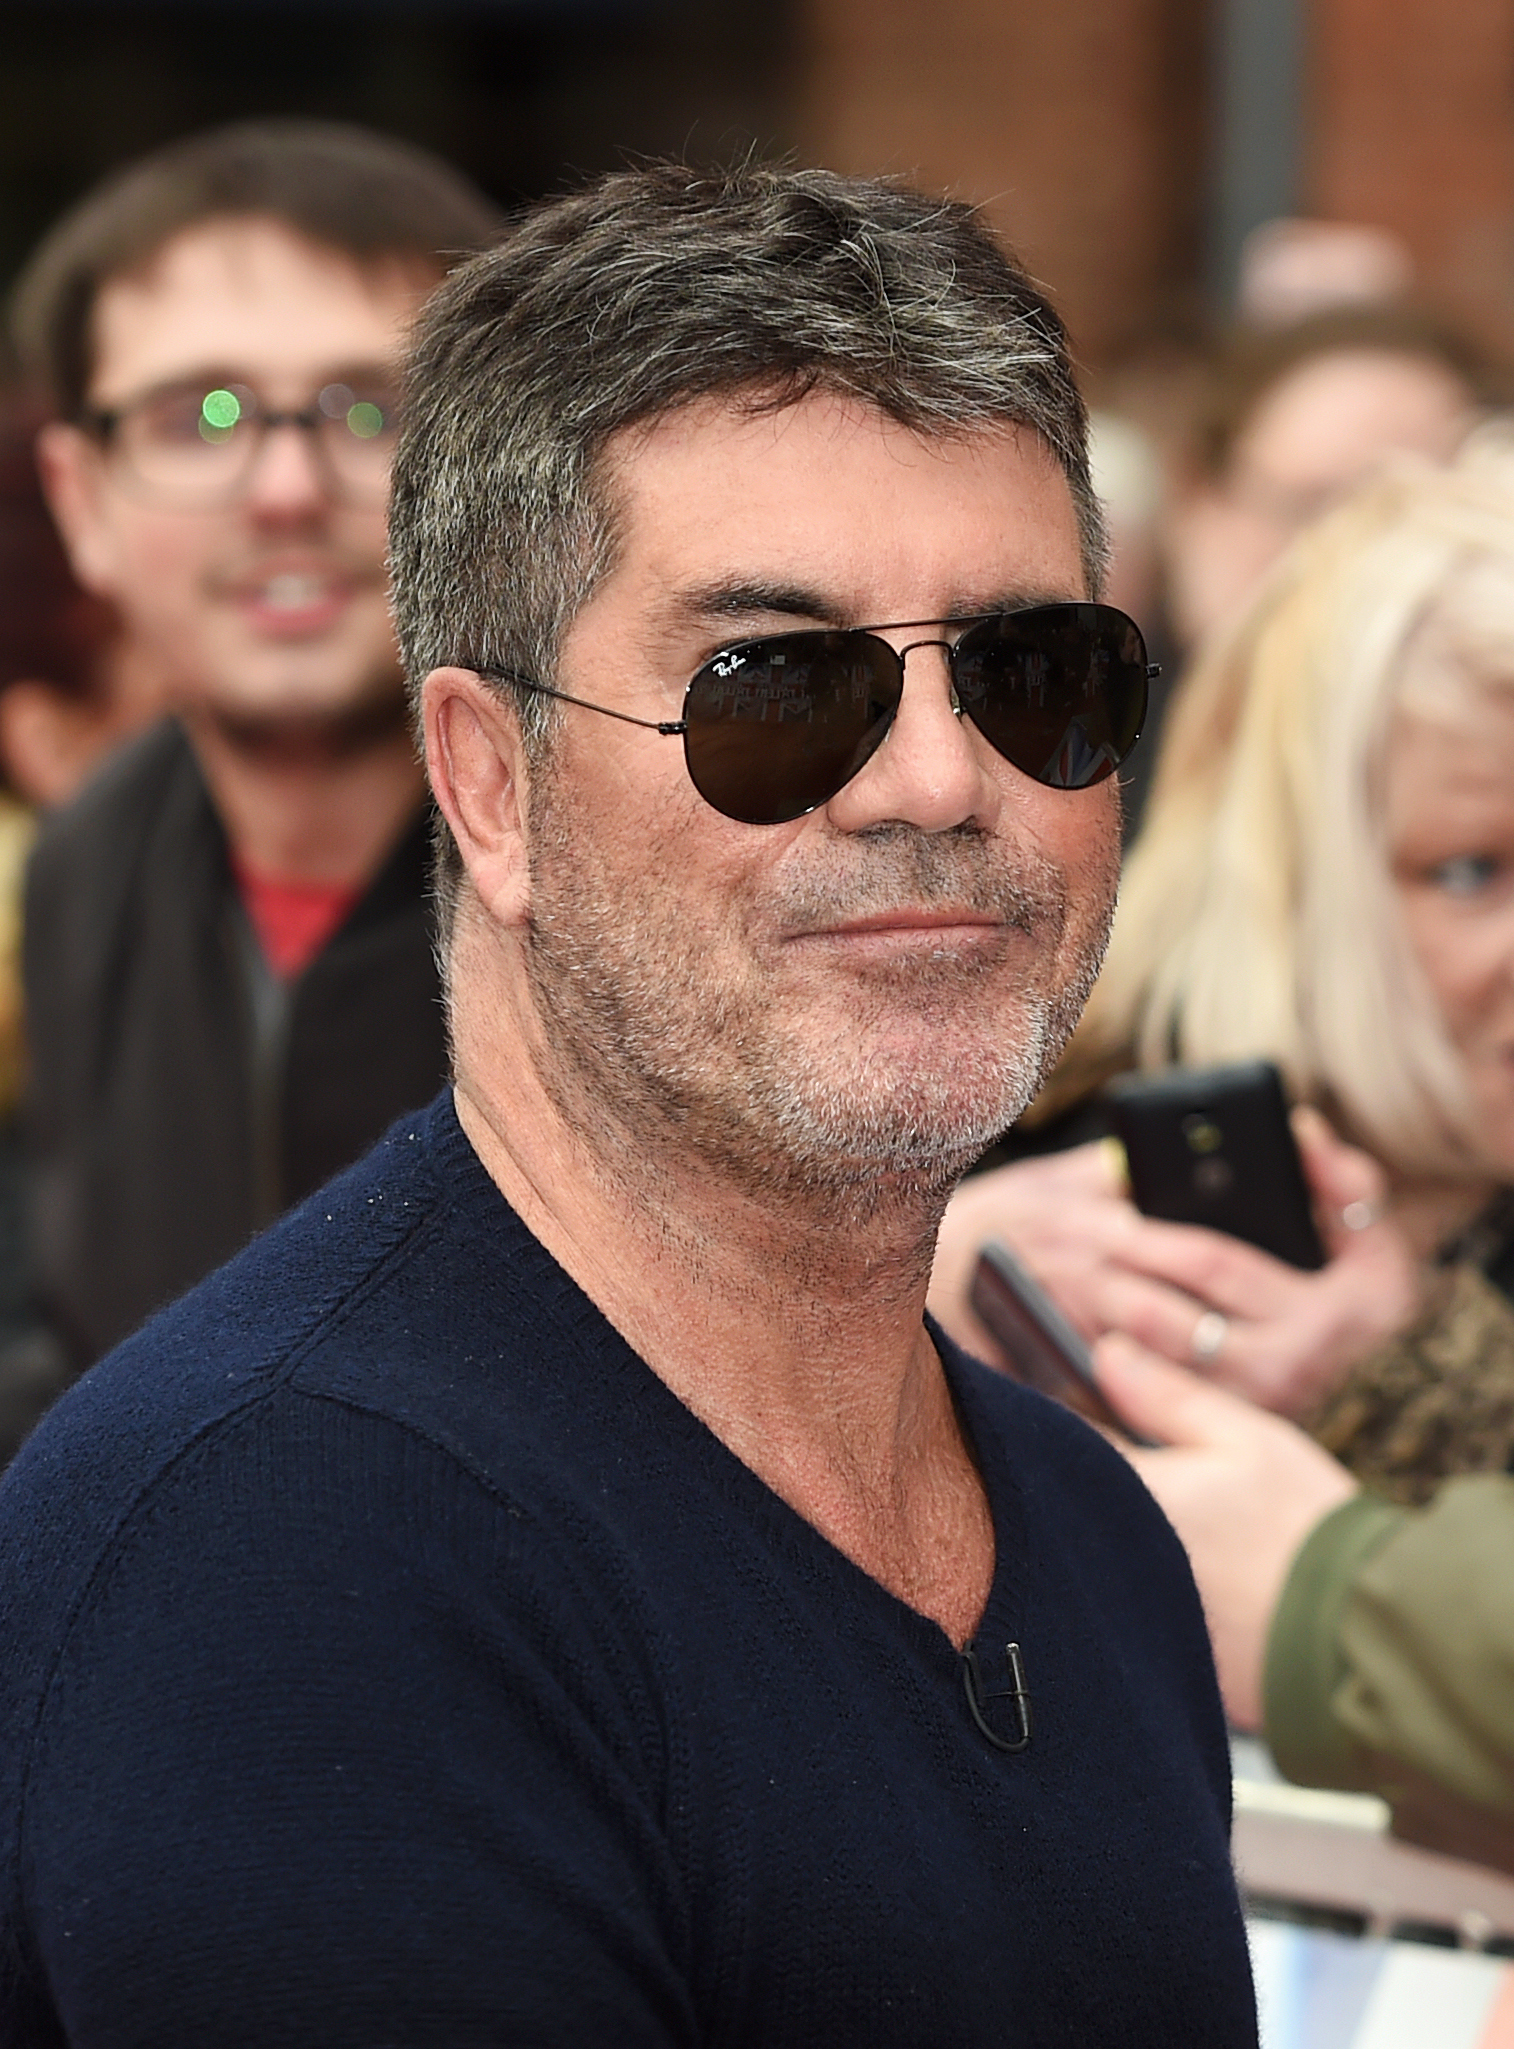 simon cowell 3 days ago  i don't mean to be rude but the british tv and music producer we all love to  hate rose to public prominence as a judge on pop idol and.